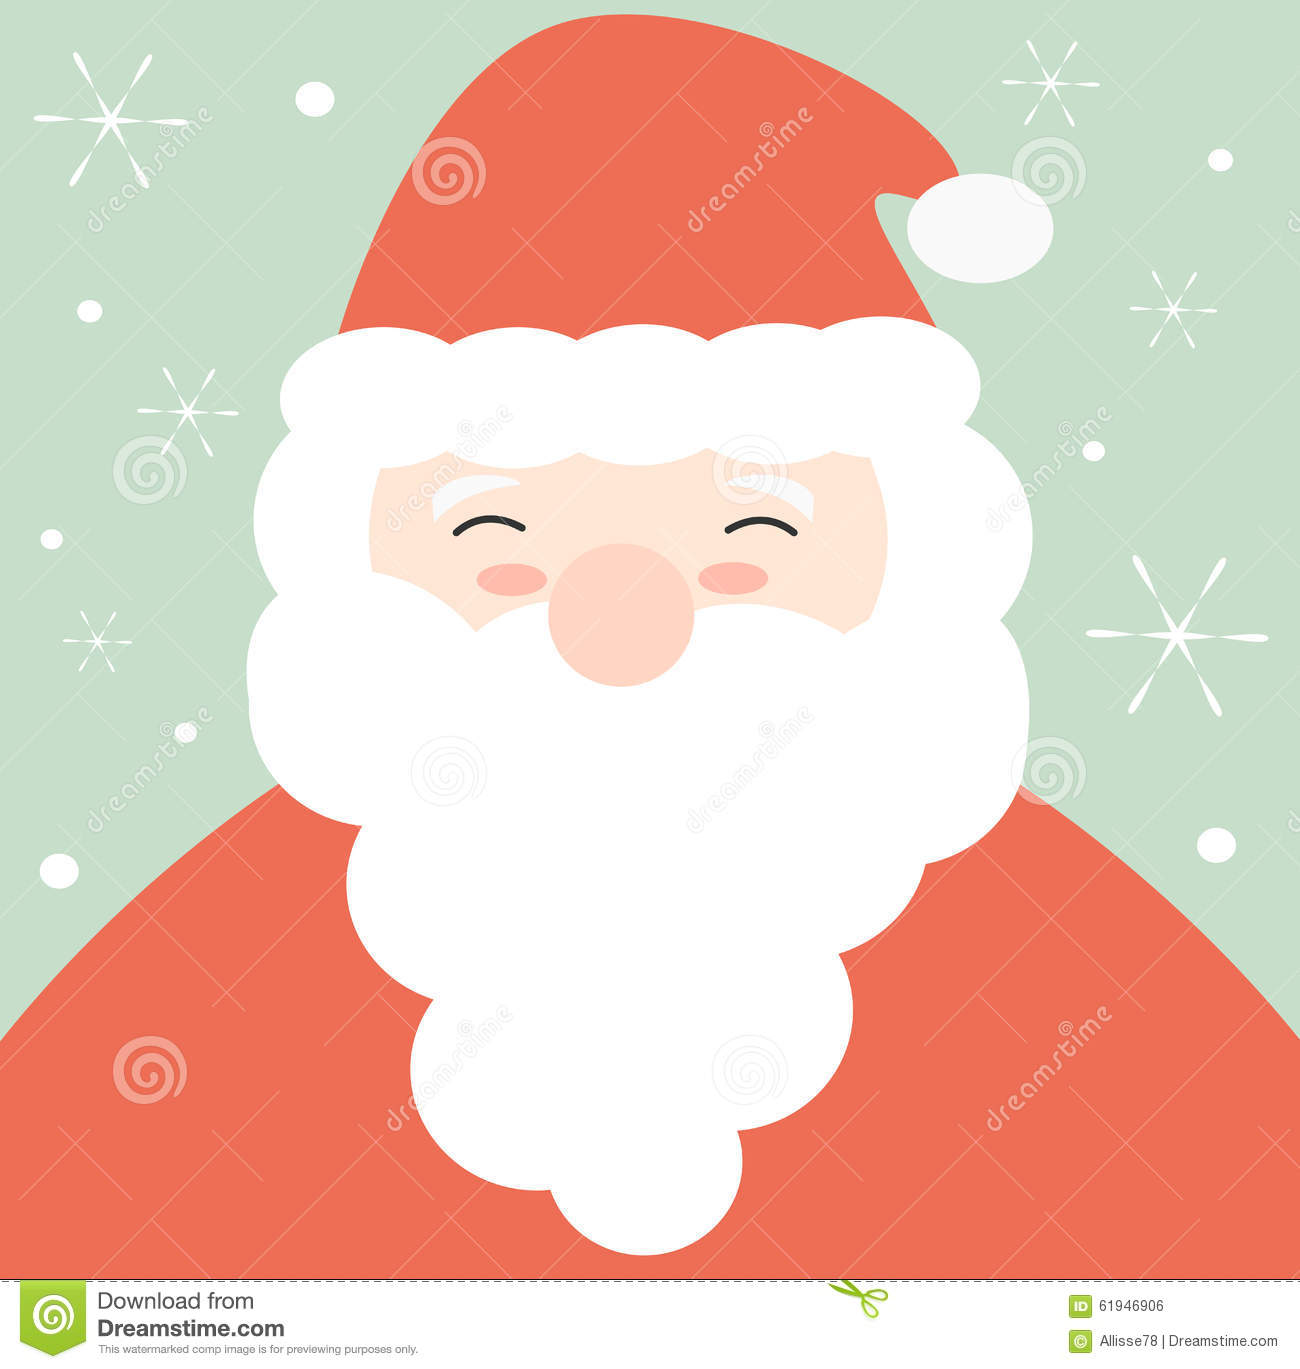 Cartoon Santa Claus Face Cute Illustration For Christmas ...